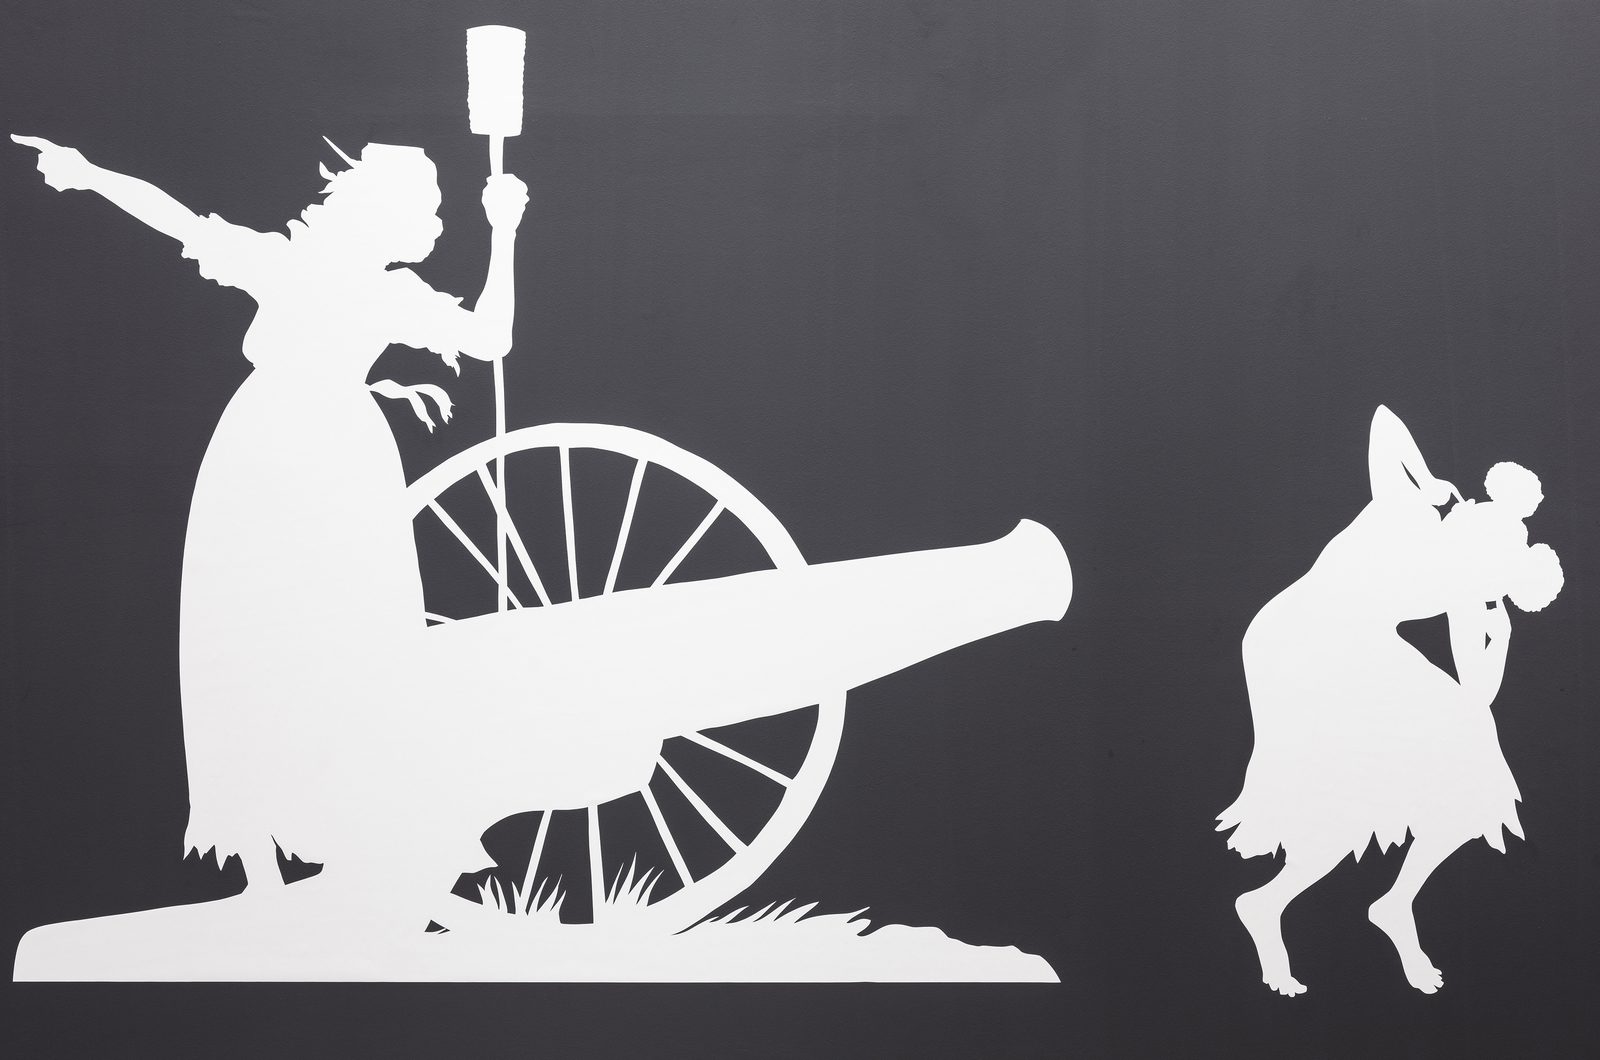 Detail, Kara Walker, THE SOVEREIGN CITIZENS SESQUICENTENNIAL CIVIL WAR CELEBRATION, Sprüth Magers, Berlin, 2020 Photography Timo Ohler Courtesy Sprüth Magers and Sikkema Jenkins & Co.